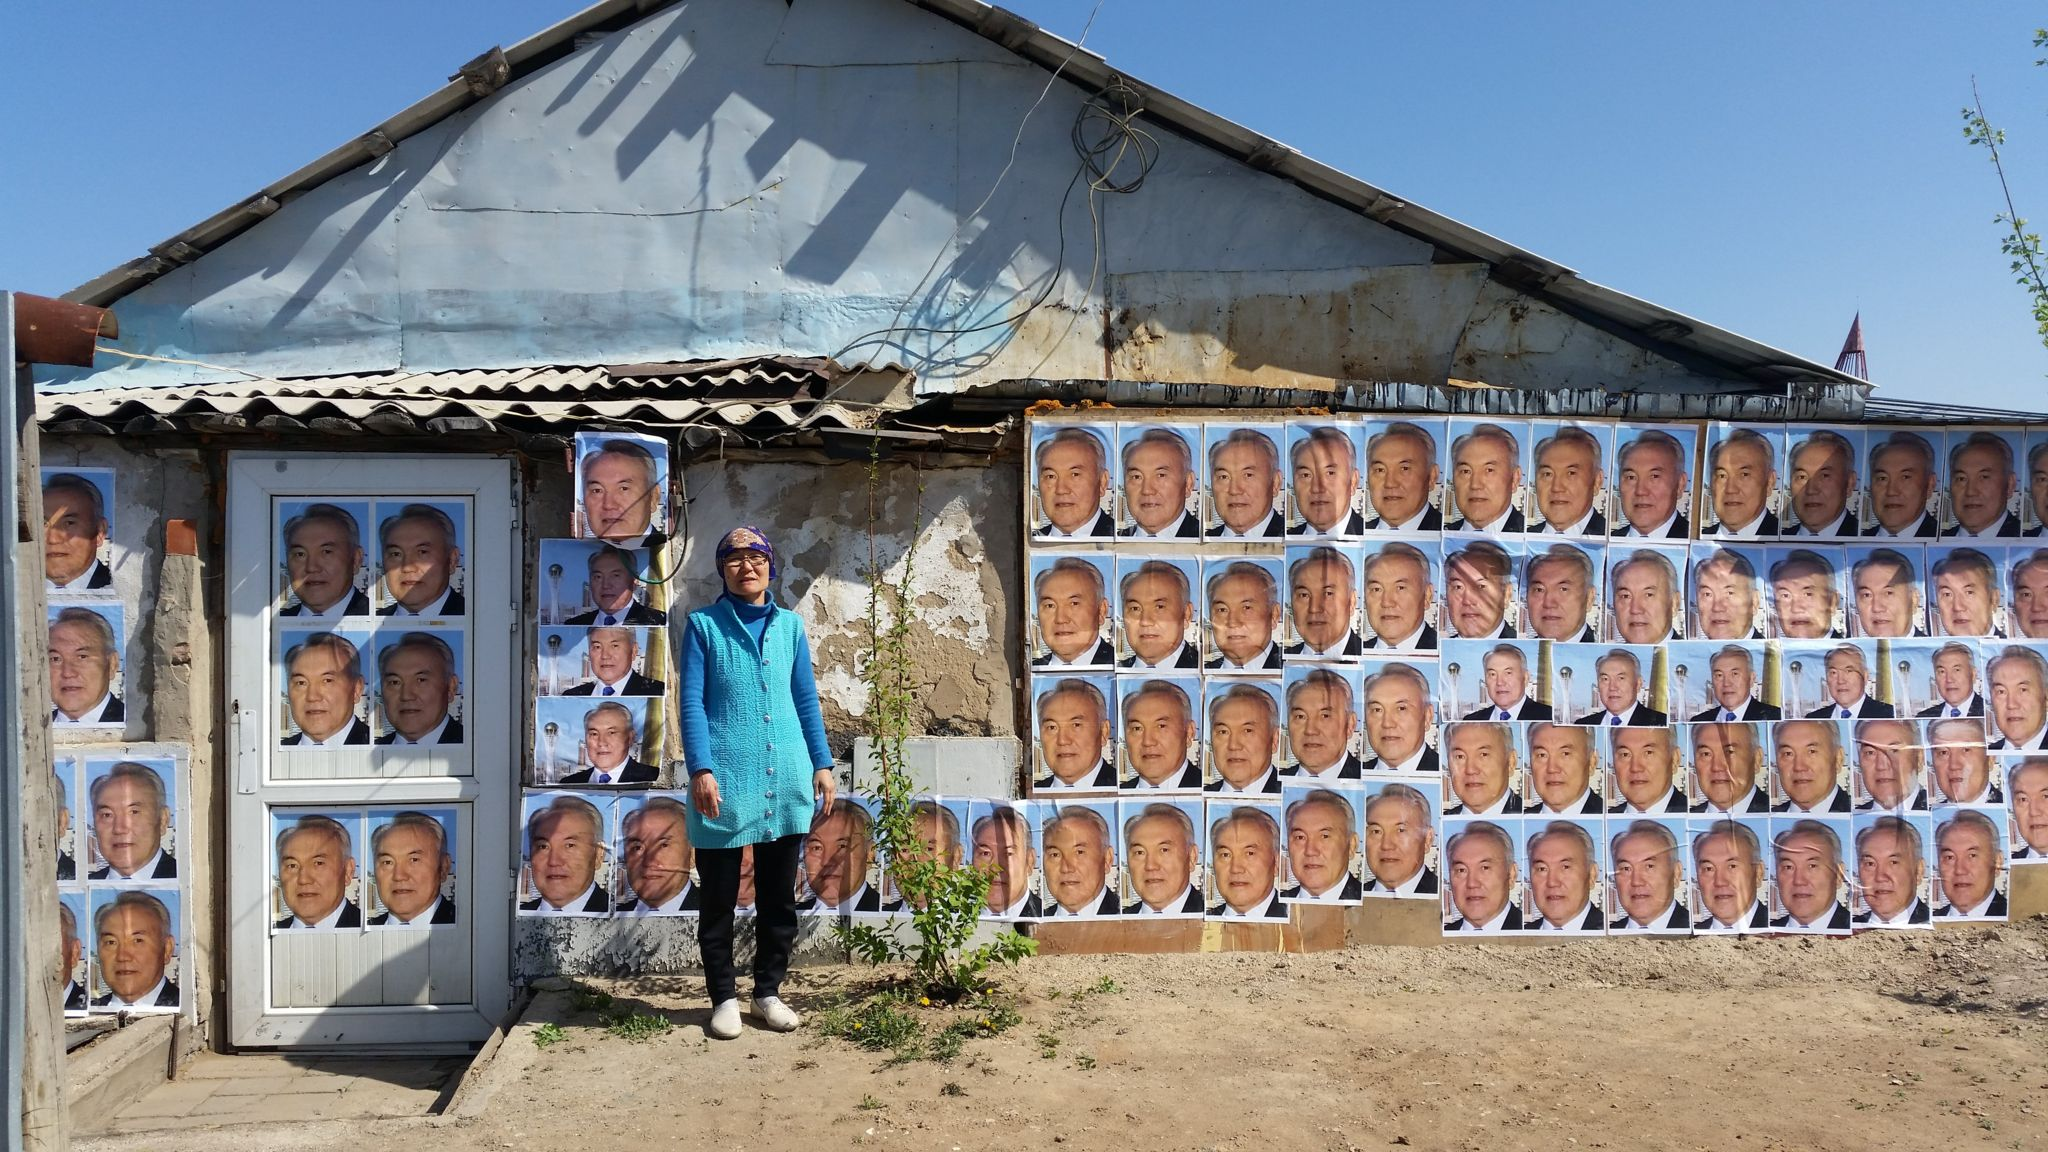 A woman in Astana, Kazakhstan has plastered the outside walls of her house with images of President Nursultan Nazarbayev to stop it from being demolished